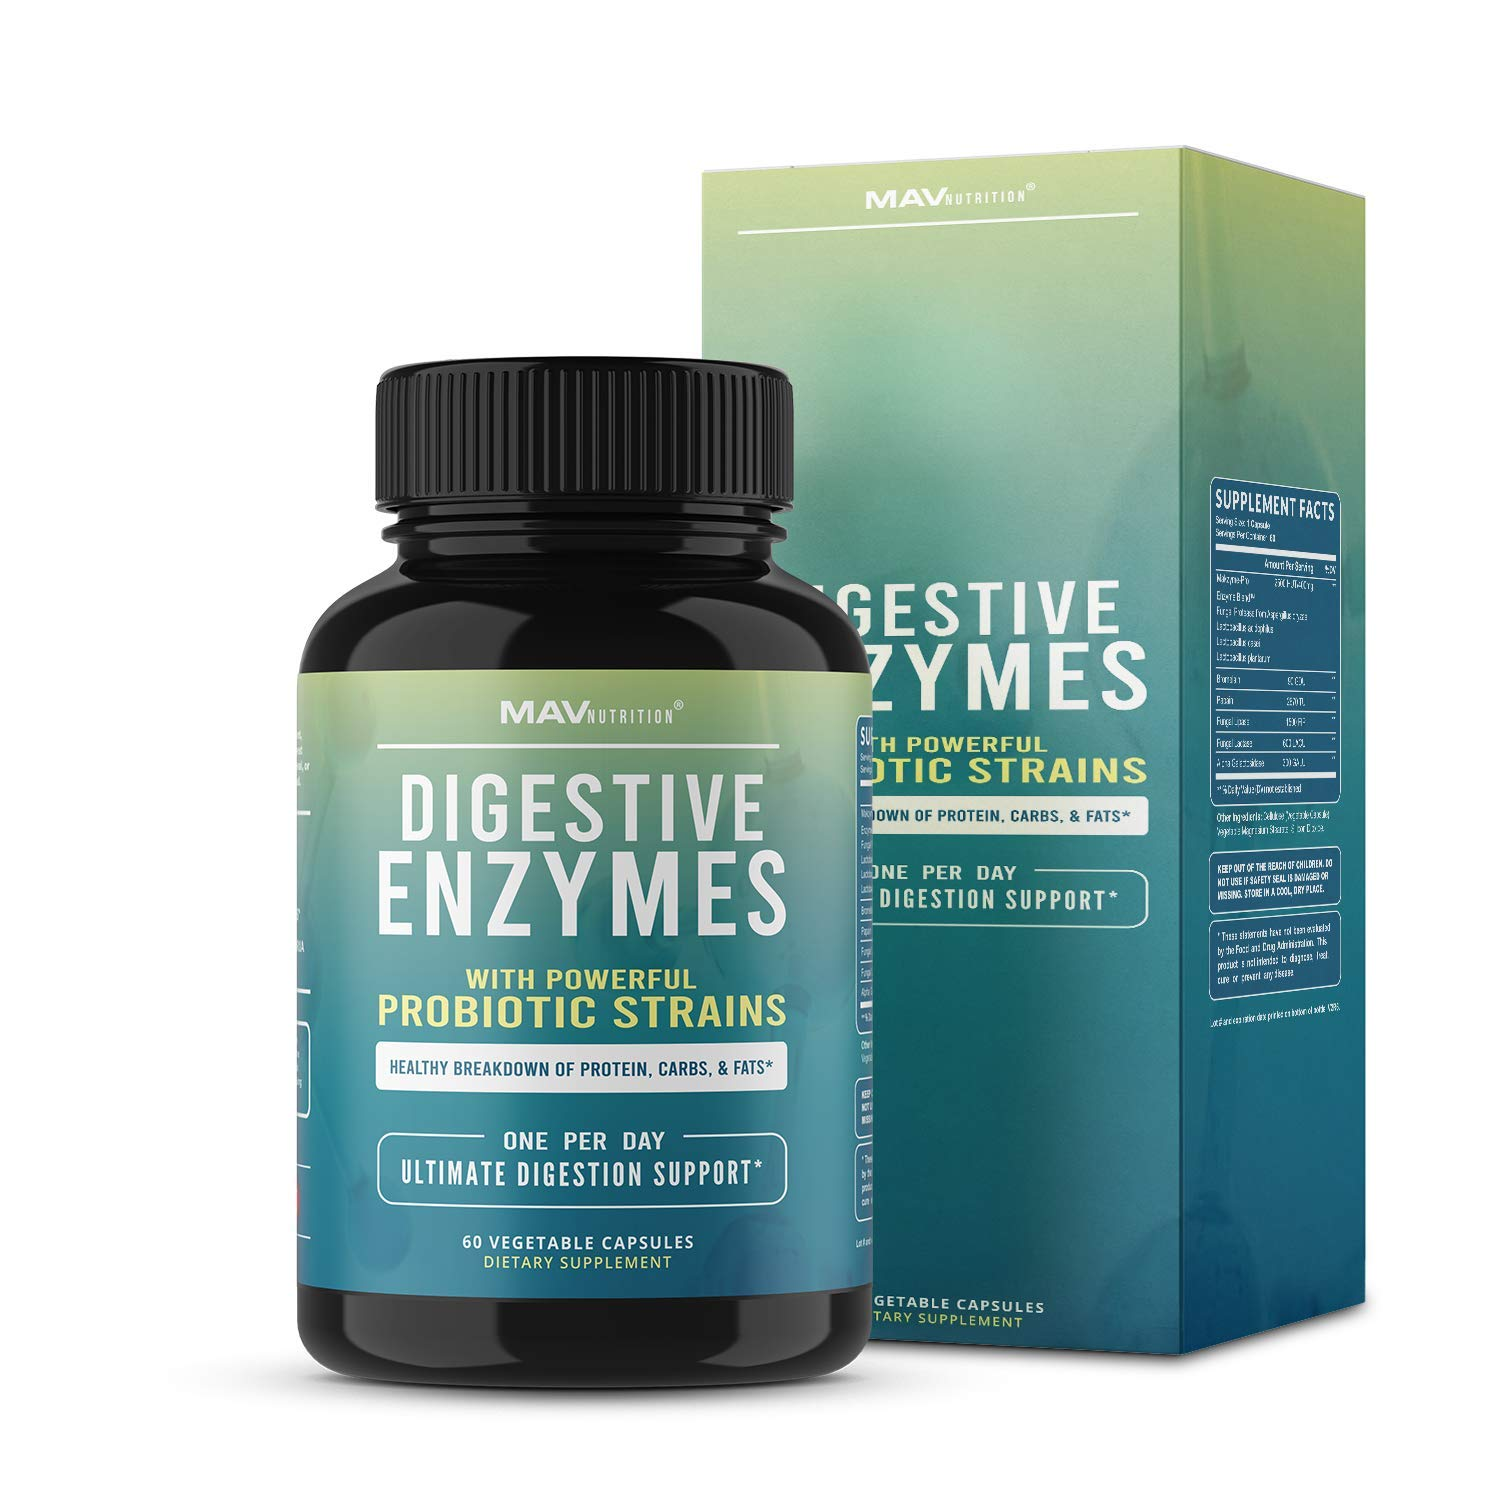 MAV Nutrition Digestive Enzymes & Probiotics, Digestion Aid with 3 Strains, Shelf Stable, Non-GMO, 60 Count by MAV NUTRITION